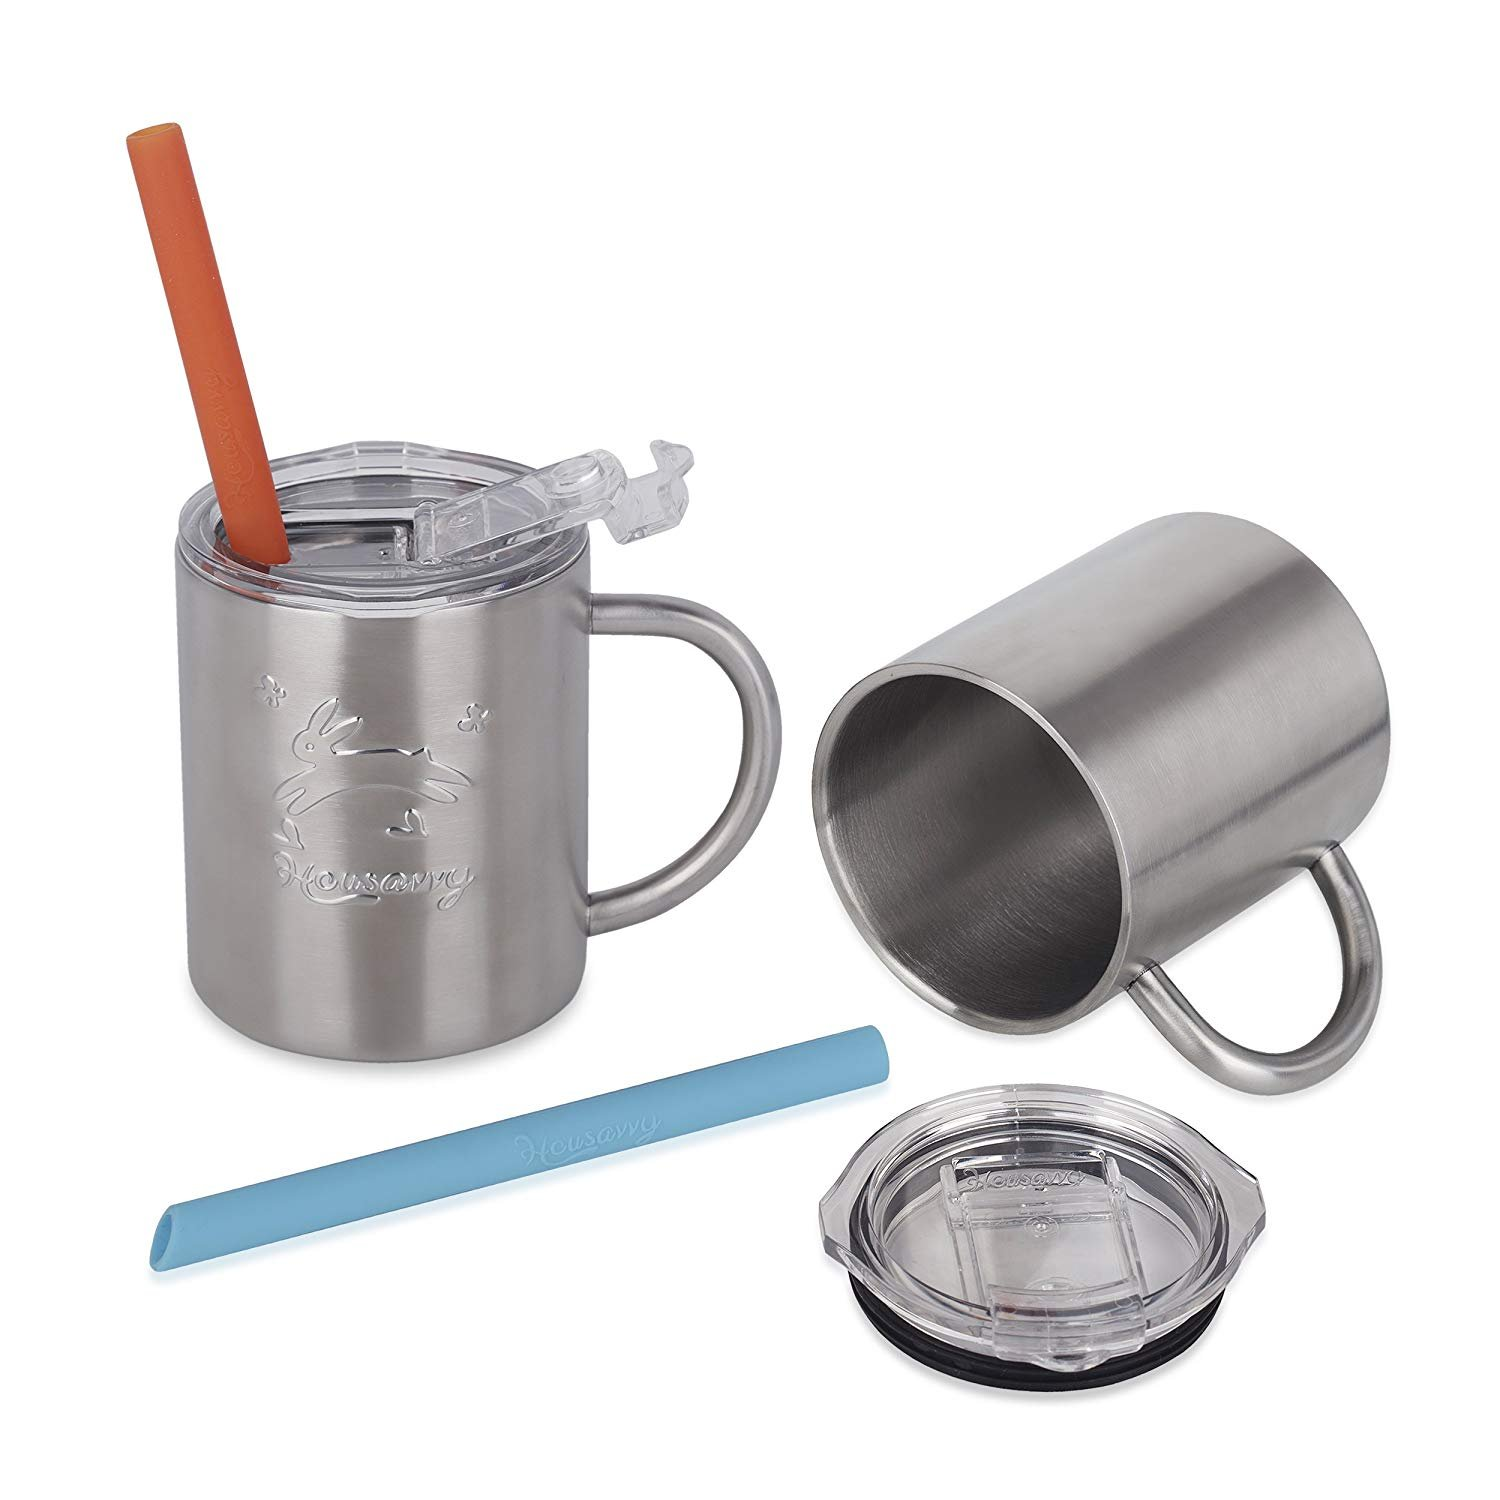 Housavvy Stainless Steel Kids Cups with Lids and Straws, 2 PACK of 10 OZ by Housavvy